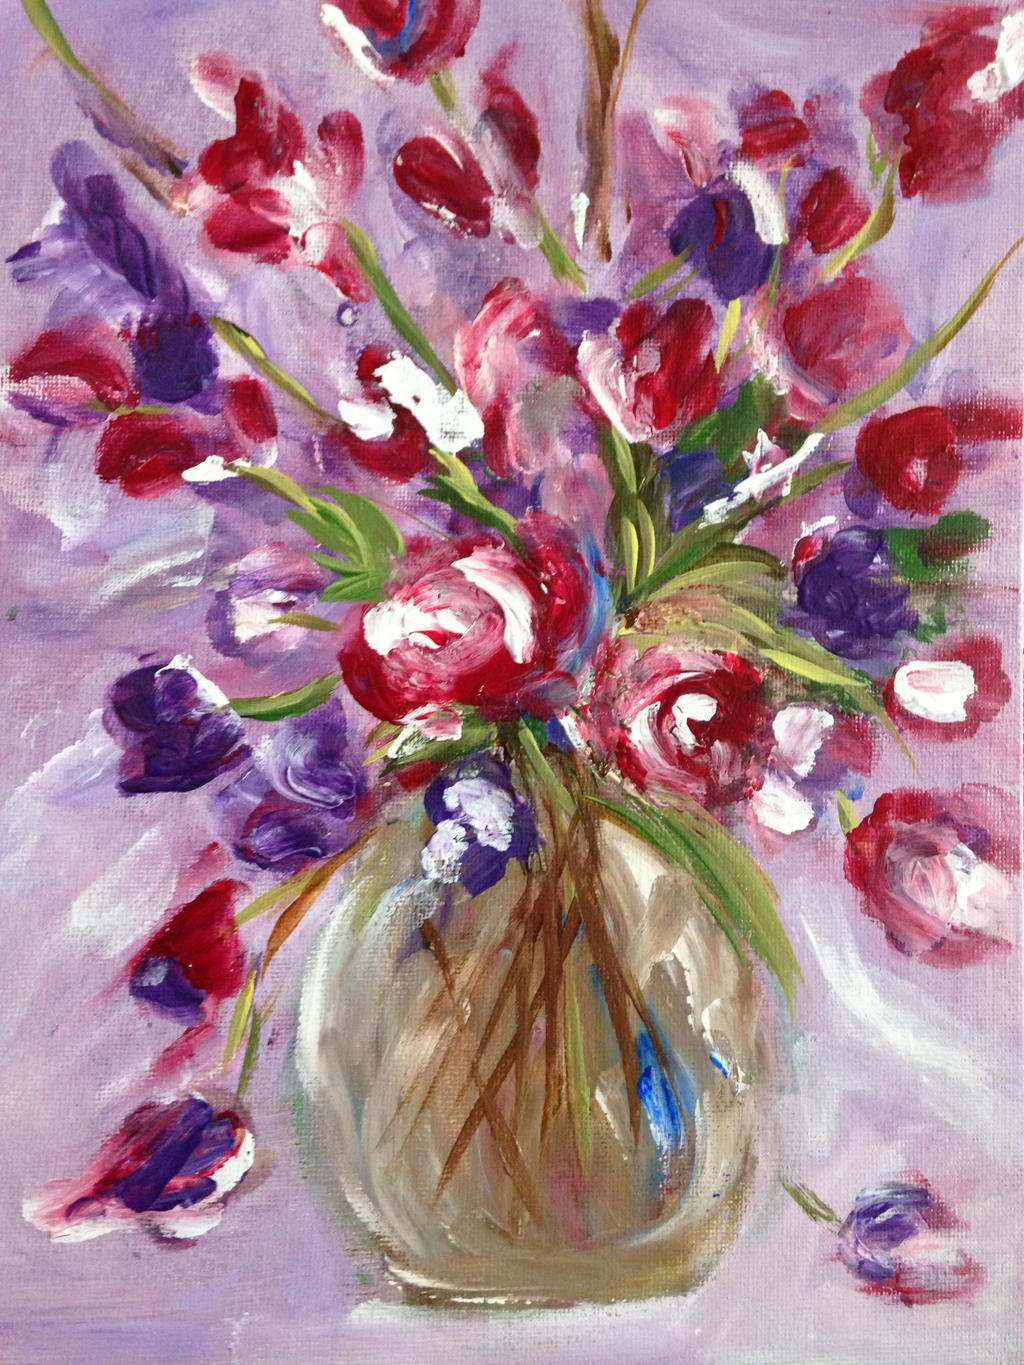 flowers for mother s day by IngridChristina on DeviantArt